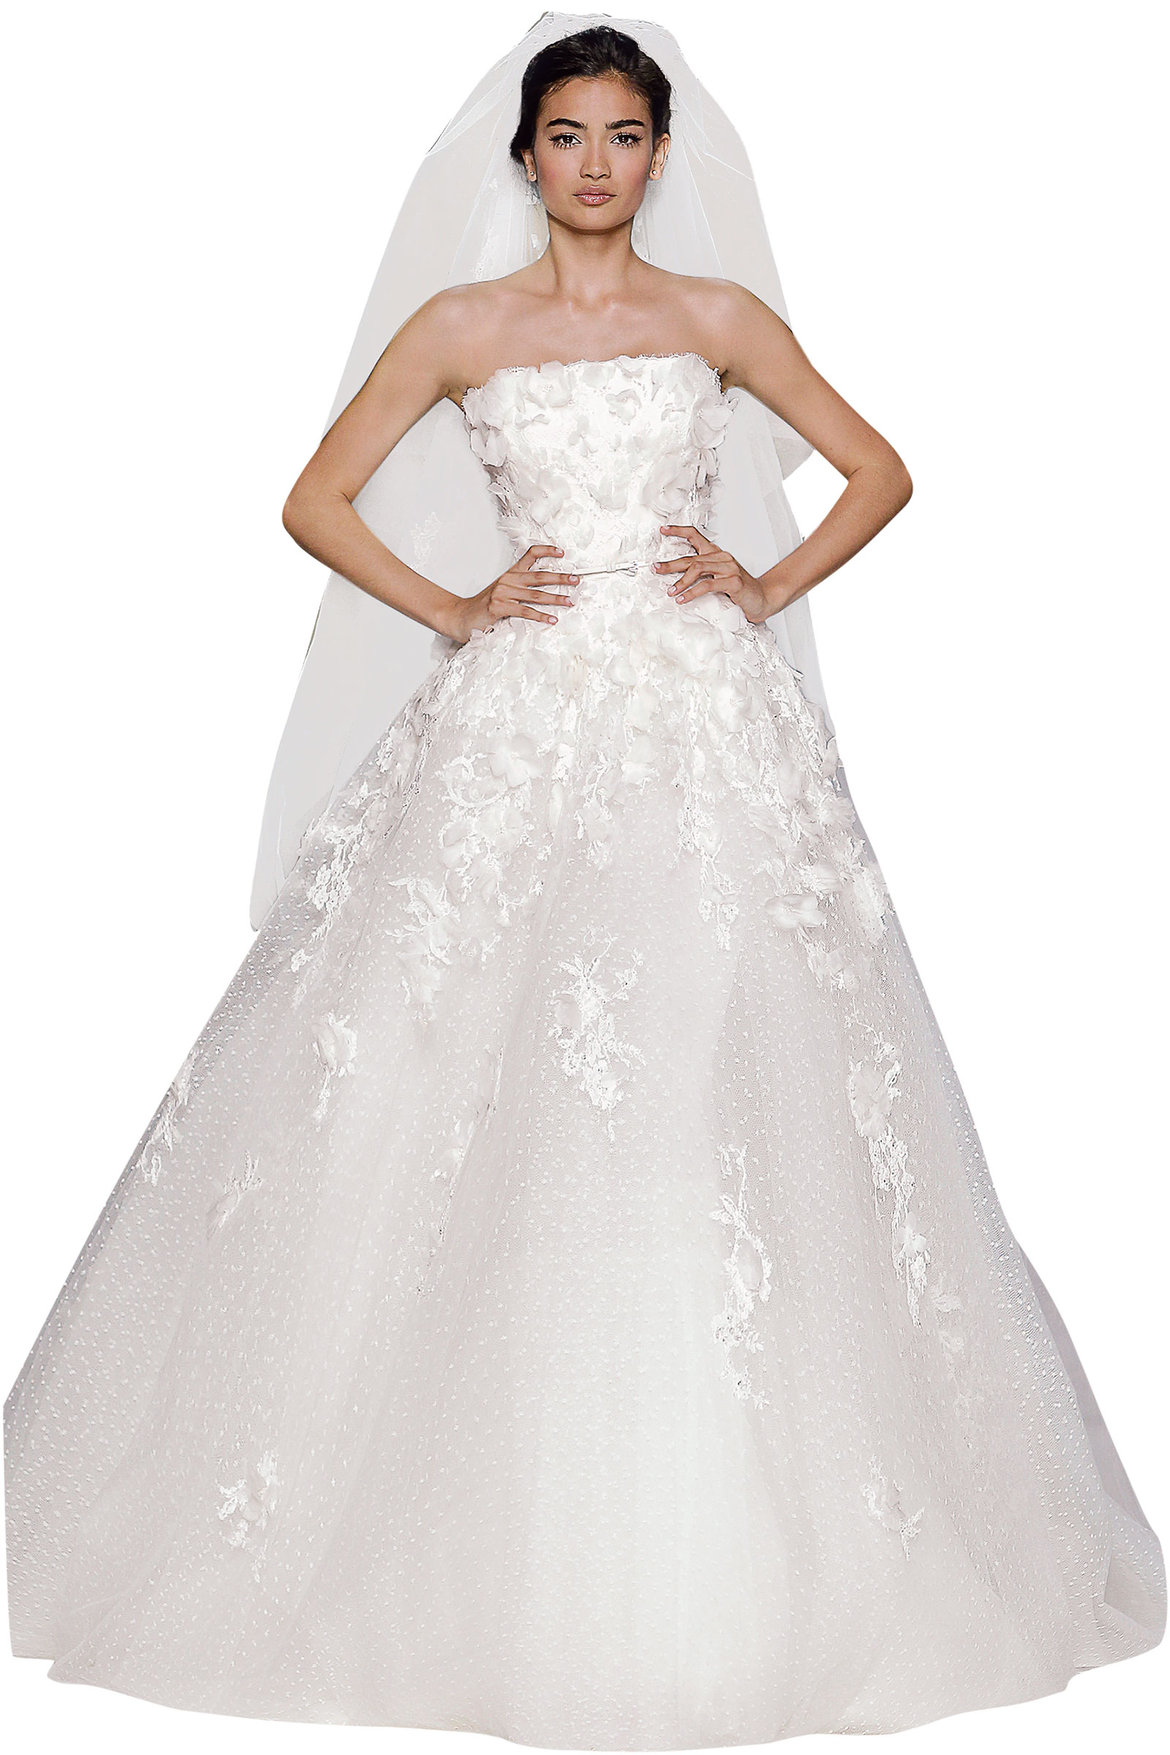 Best wedding dress for your body type page 6 bridalguide for Wedding dresses by body shape